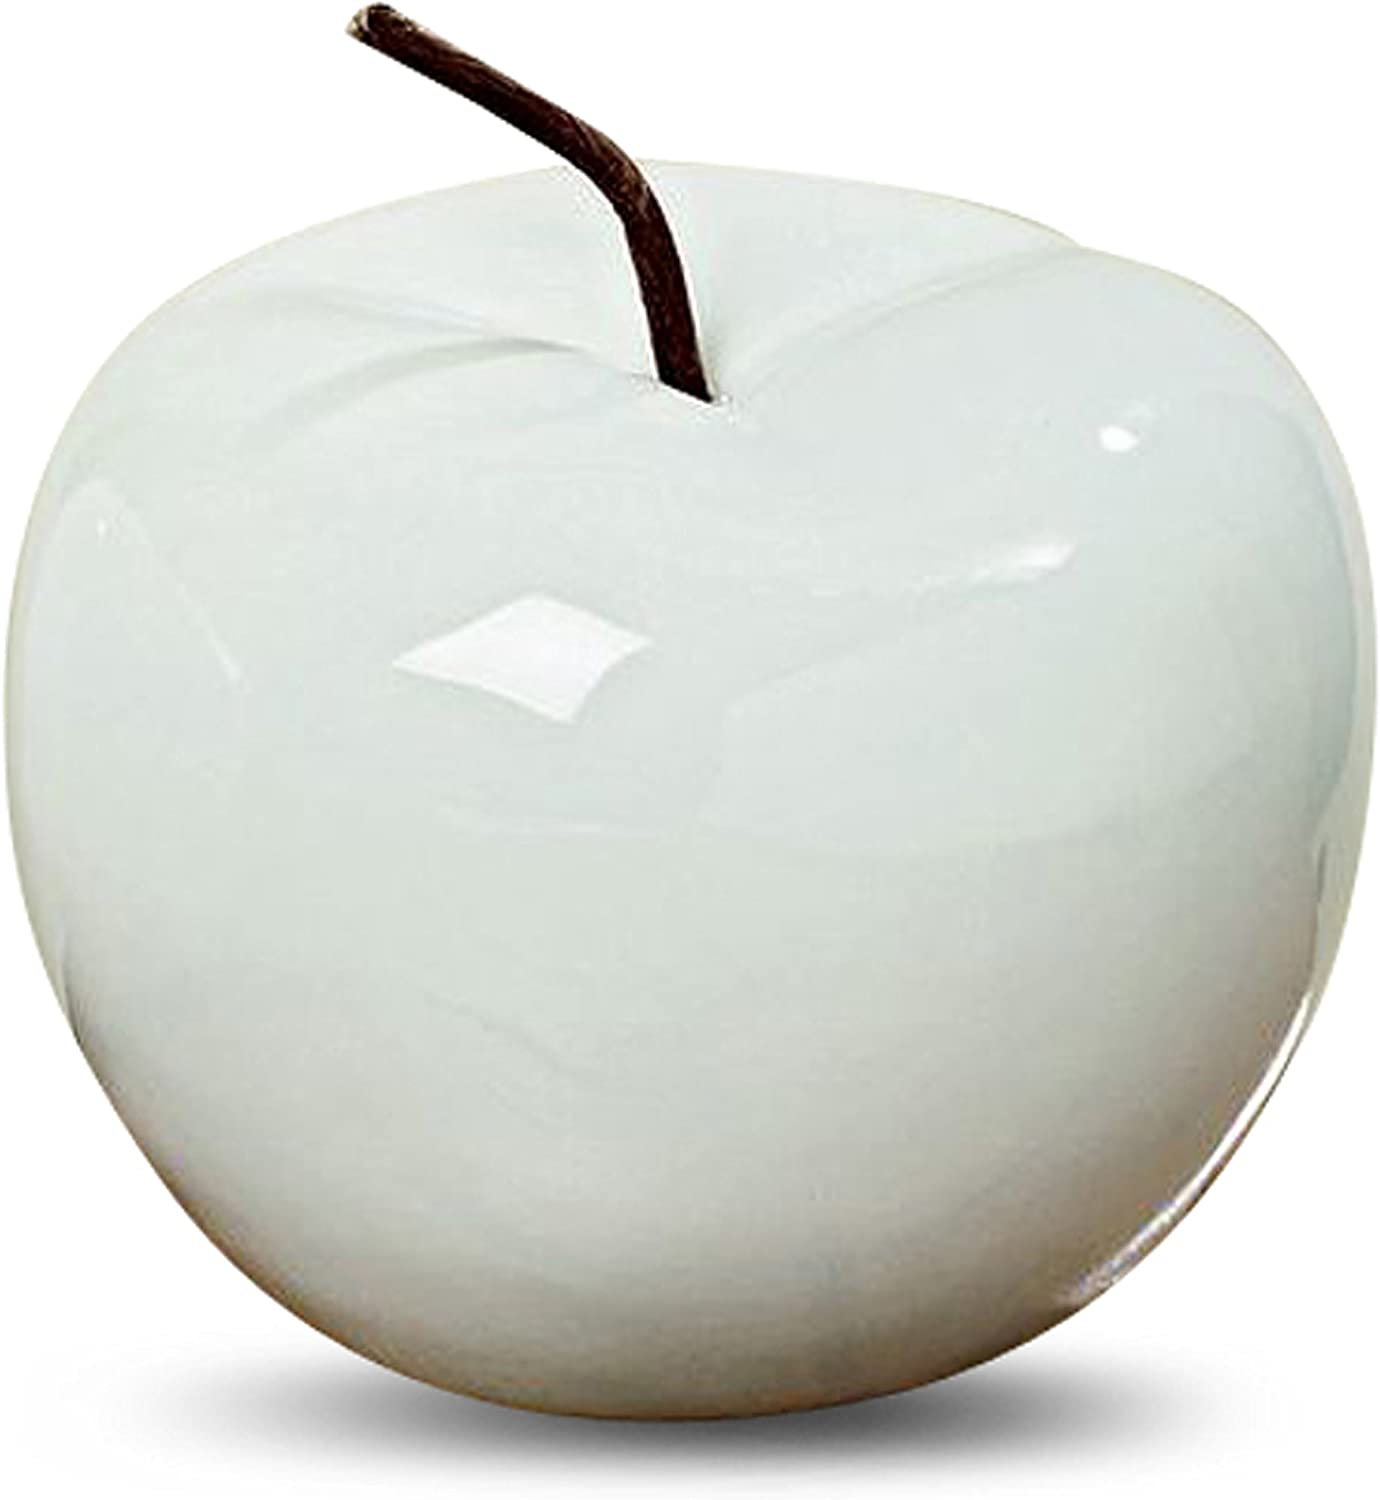 5 Inches Diameter x 4 3//4 High Inches Pearly White WHW Whole House Worlds Farm Fair Decorative Apple Brown Stem